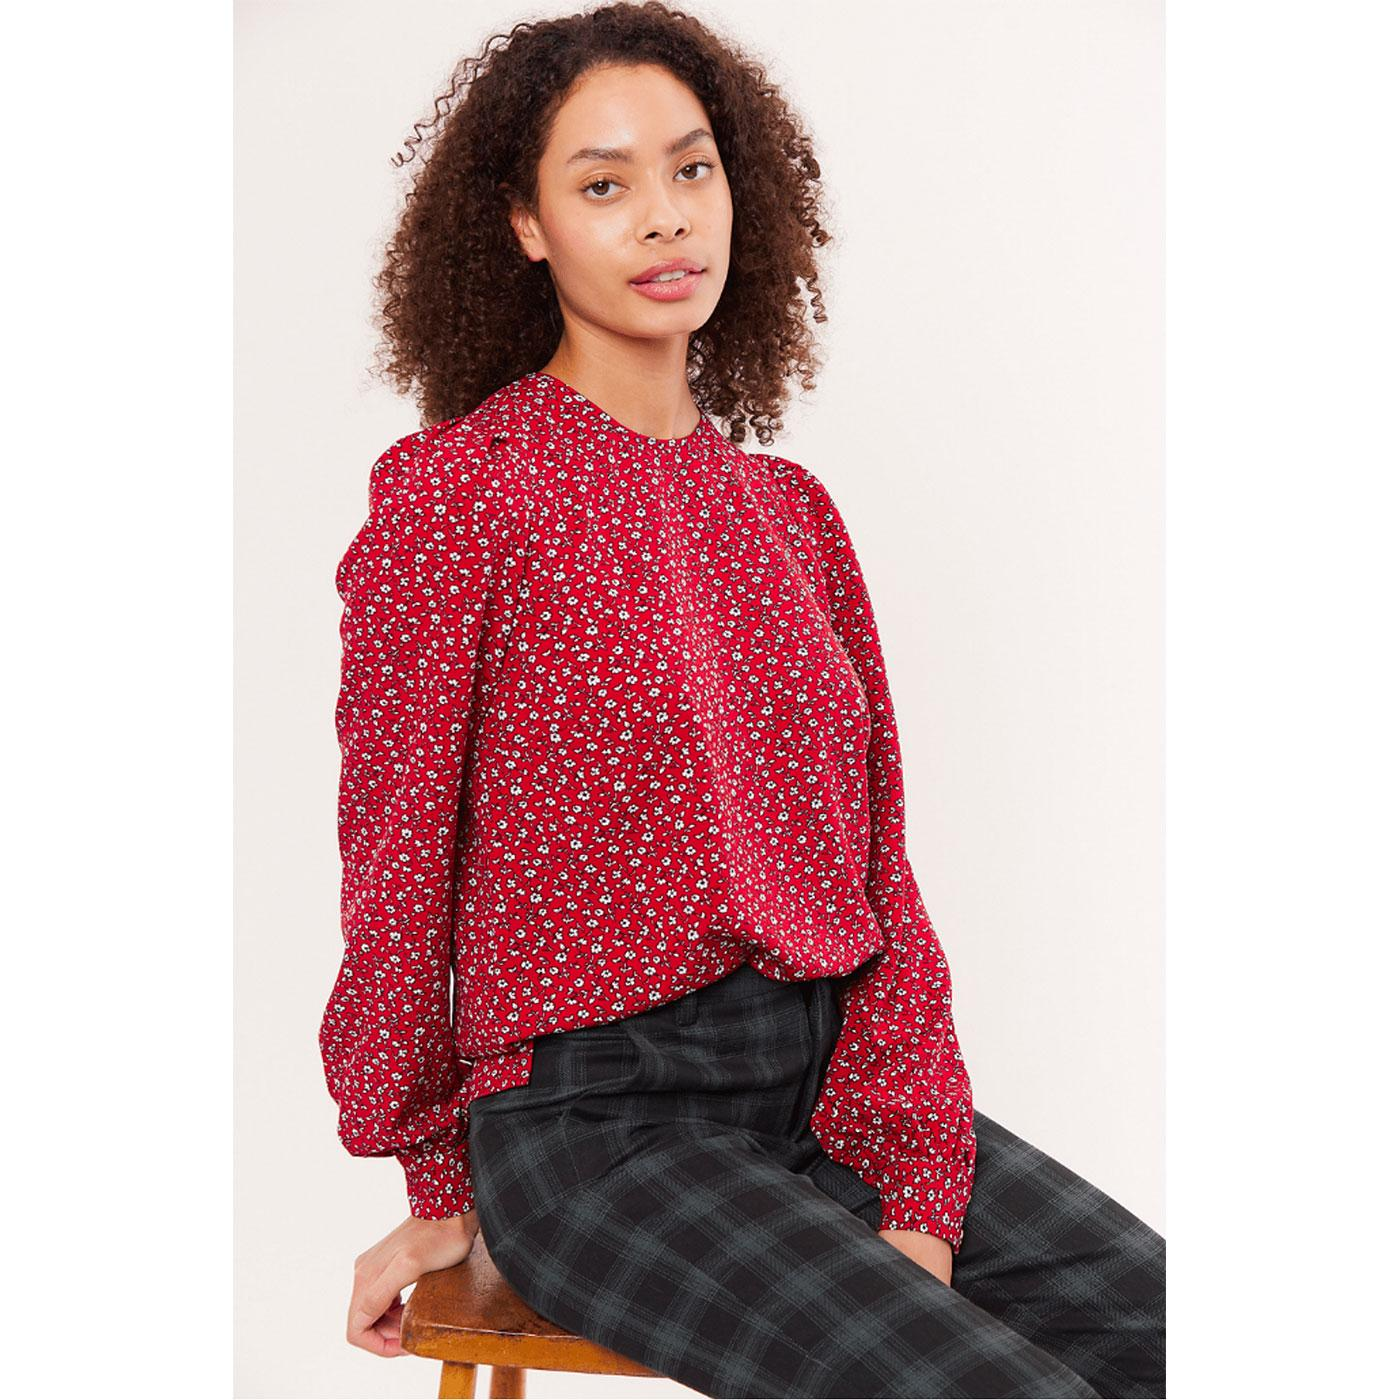 Lima LOUCHE LONDON Retro Forget Me Not Top in Red